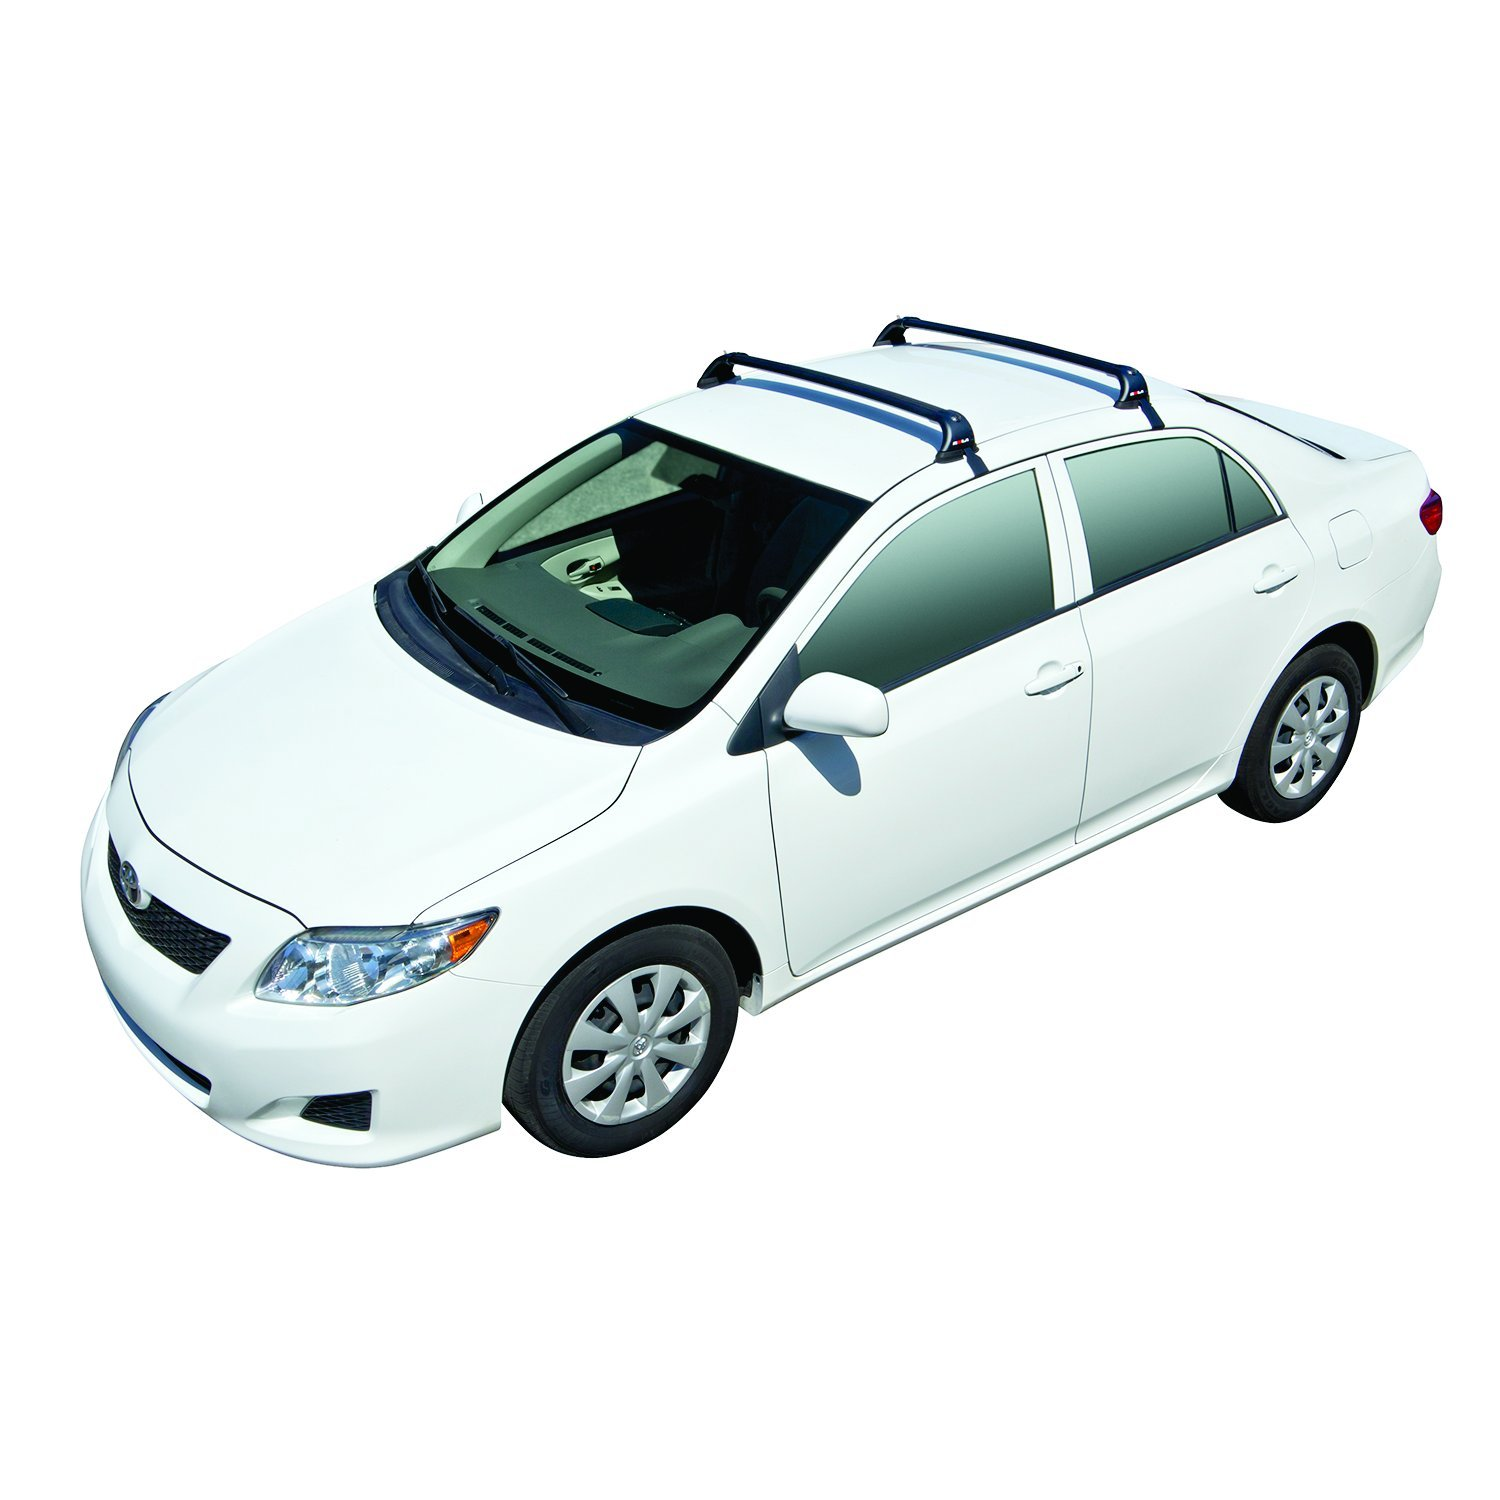 Charming Amazon.com: ROLA 59734 Removable Mount GTX Series Roof Rack For Toyota  Corolla: Automotive